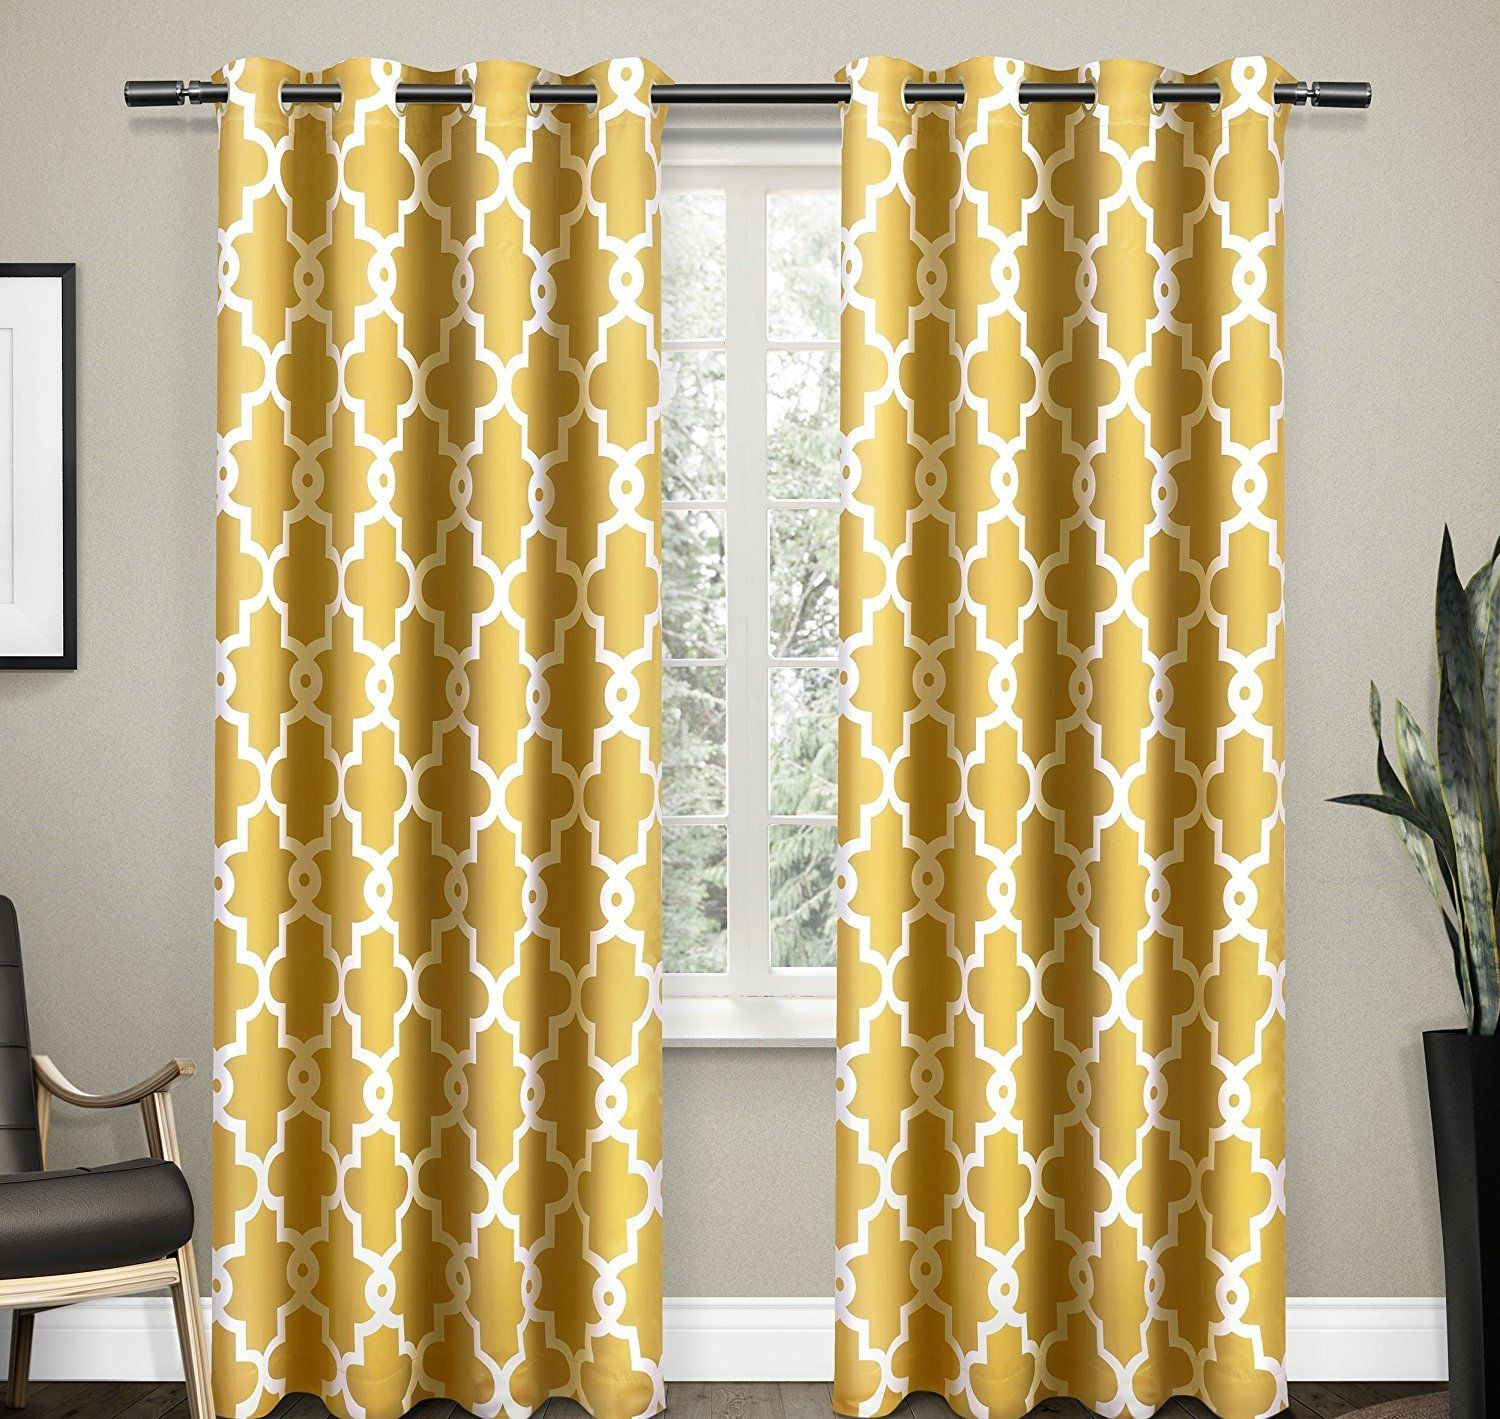 96 Inch Sundress Yellow White Moroccan Curtains Panel Pair Set